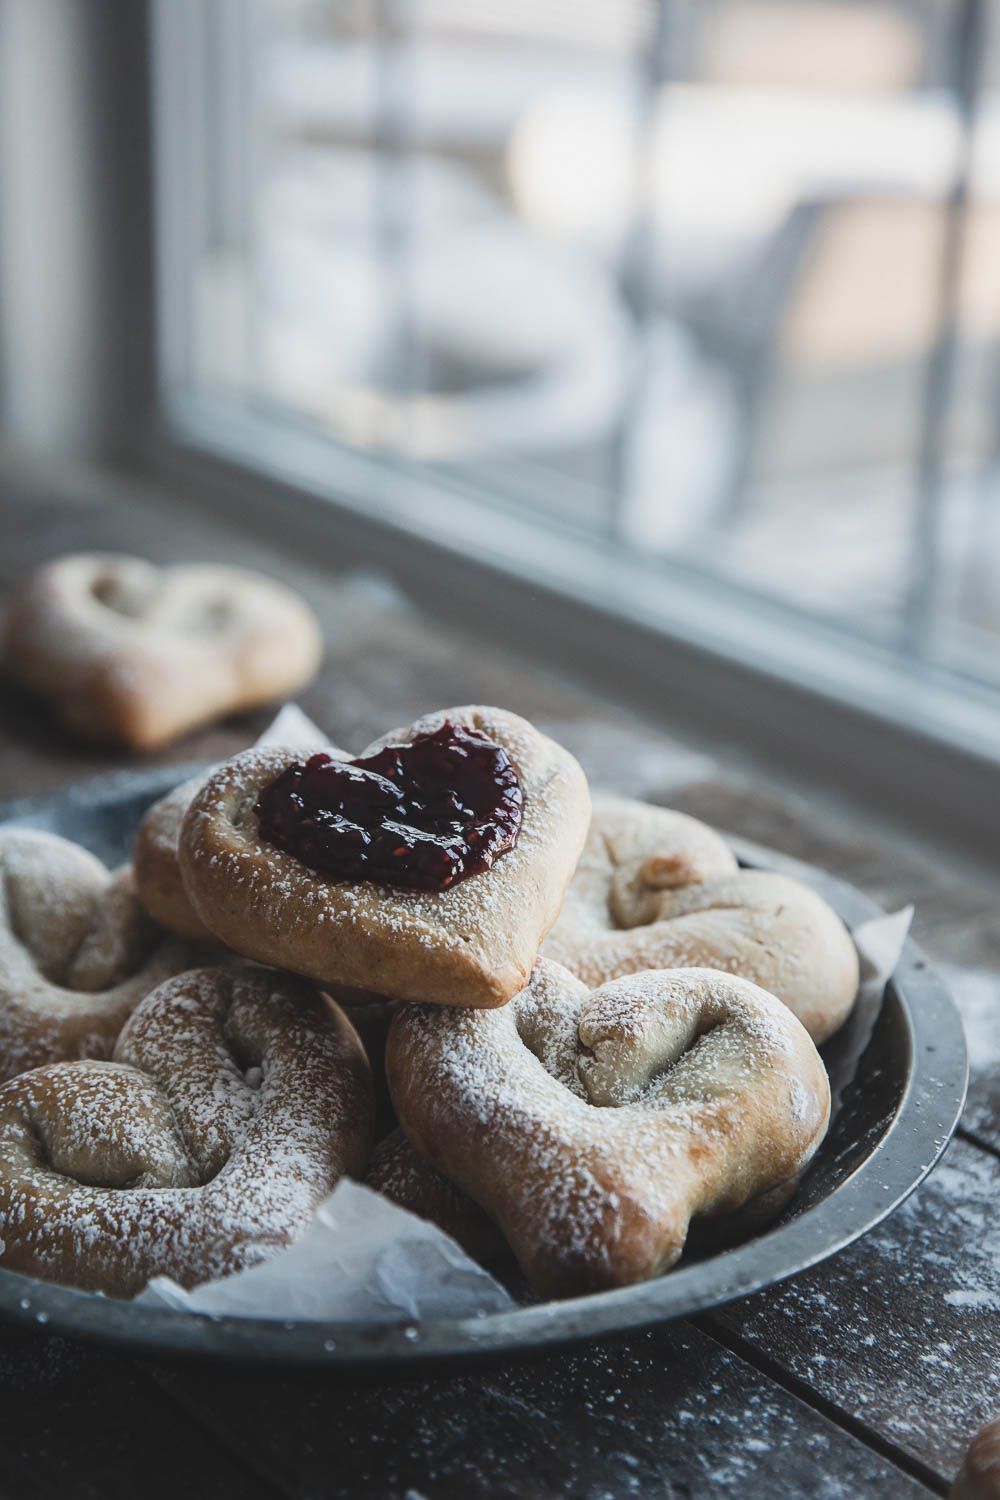 Raspberry jam on a heart-shaped cardamom bun